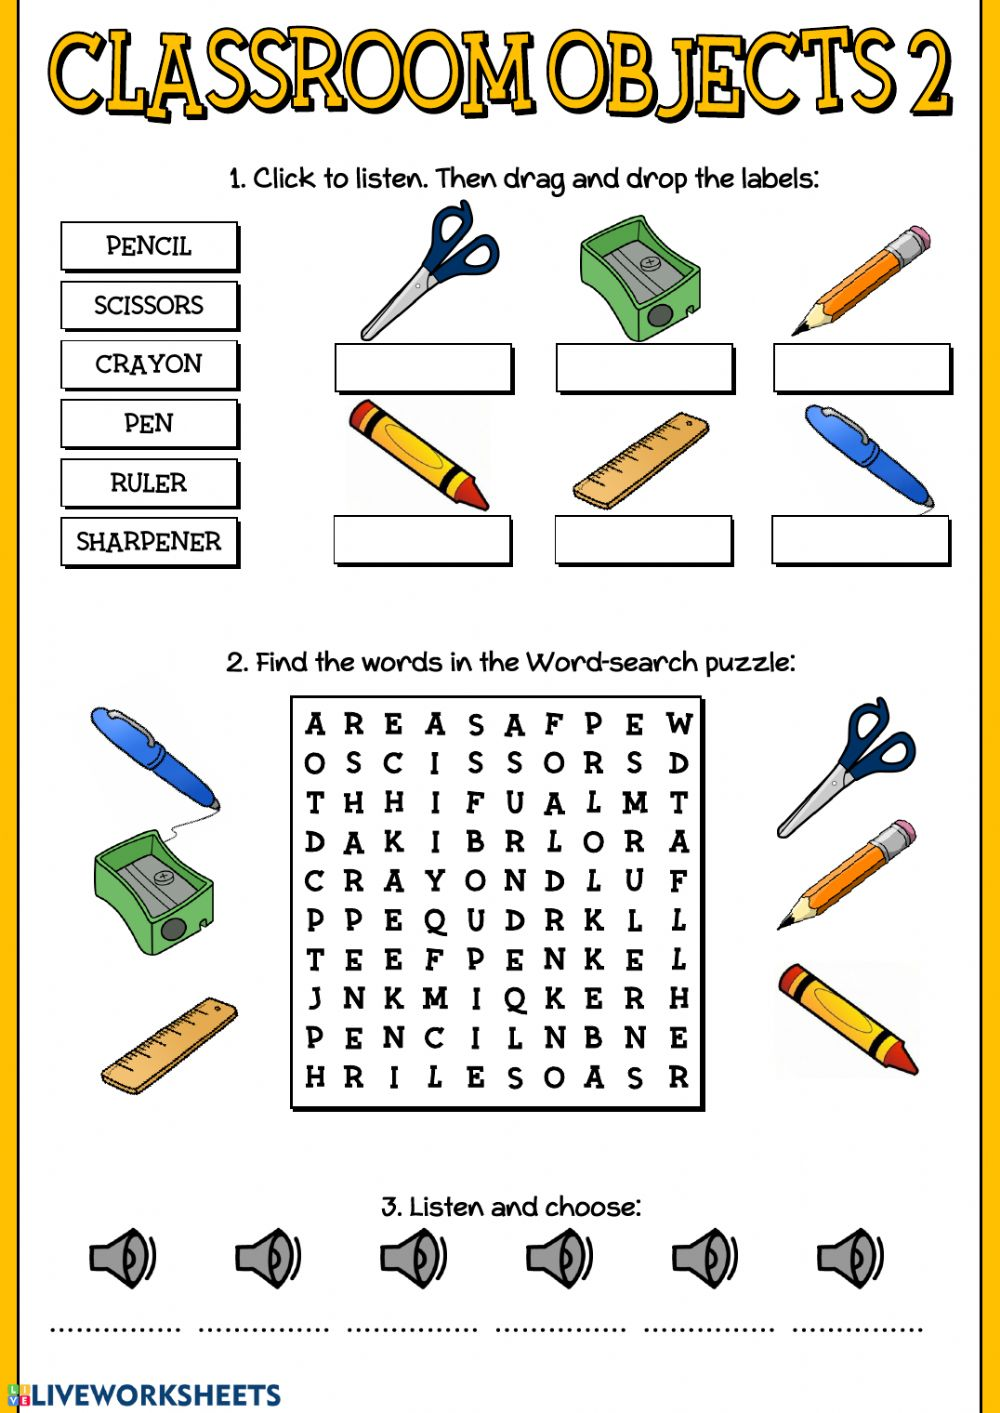 hight resolution of Classroom objects 2 worksheet